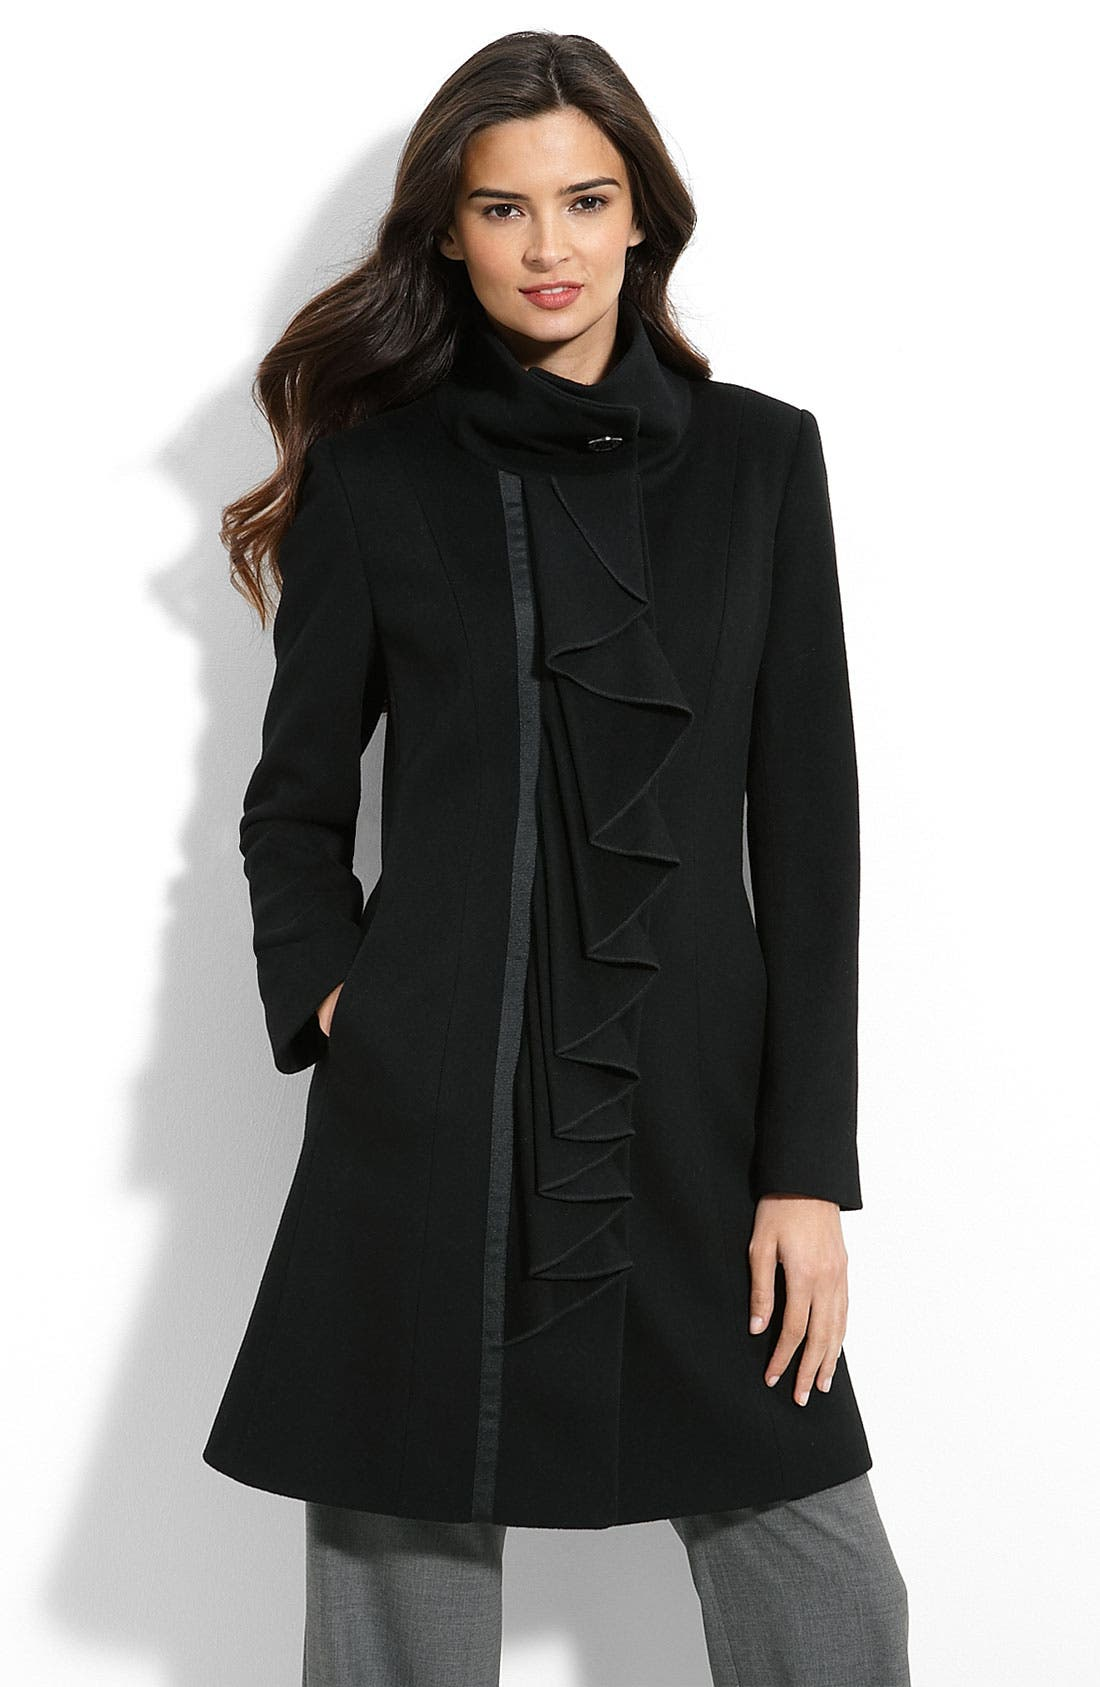 Alternate Image 1 Selected - Tahari 'Heide' Ruffle Front Coat